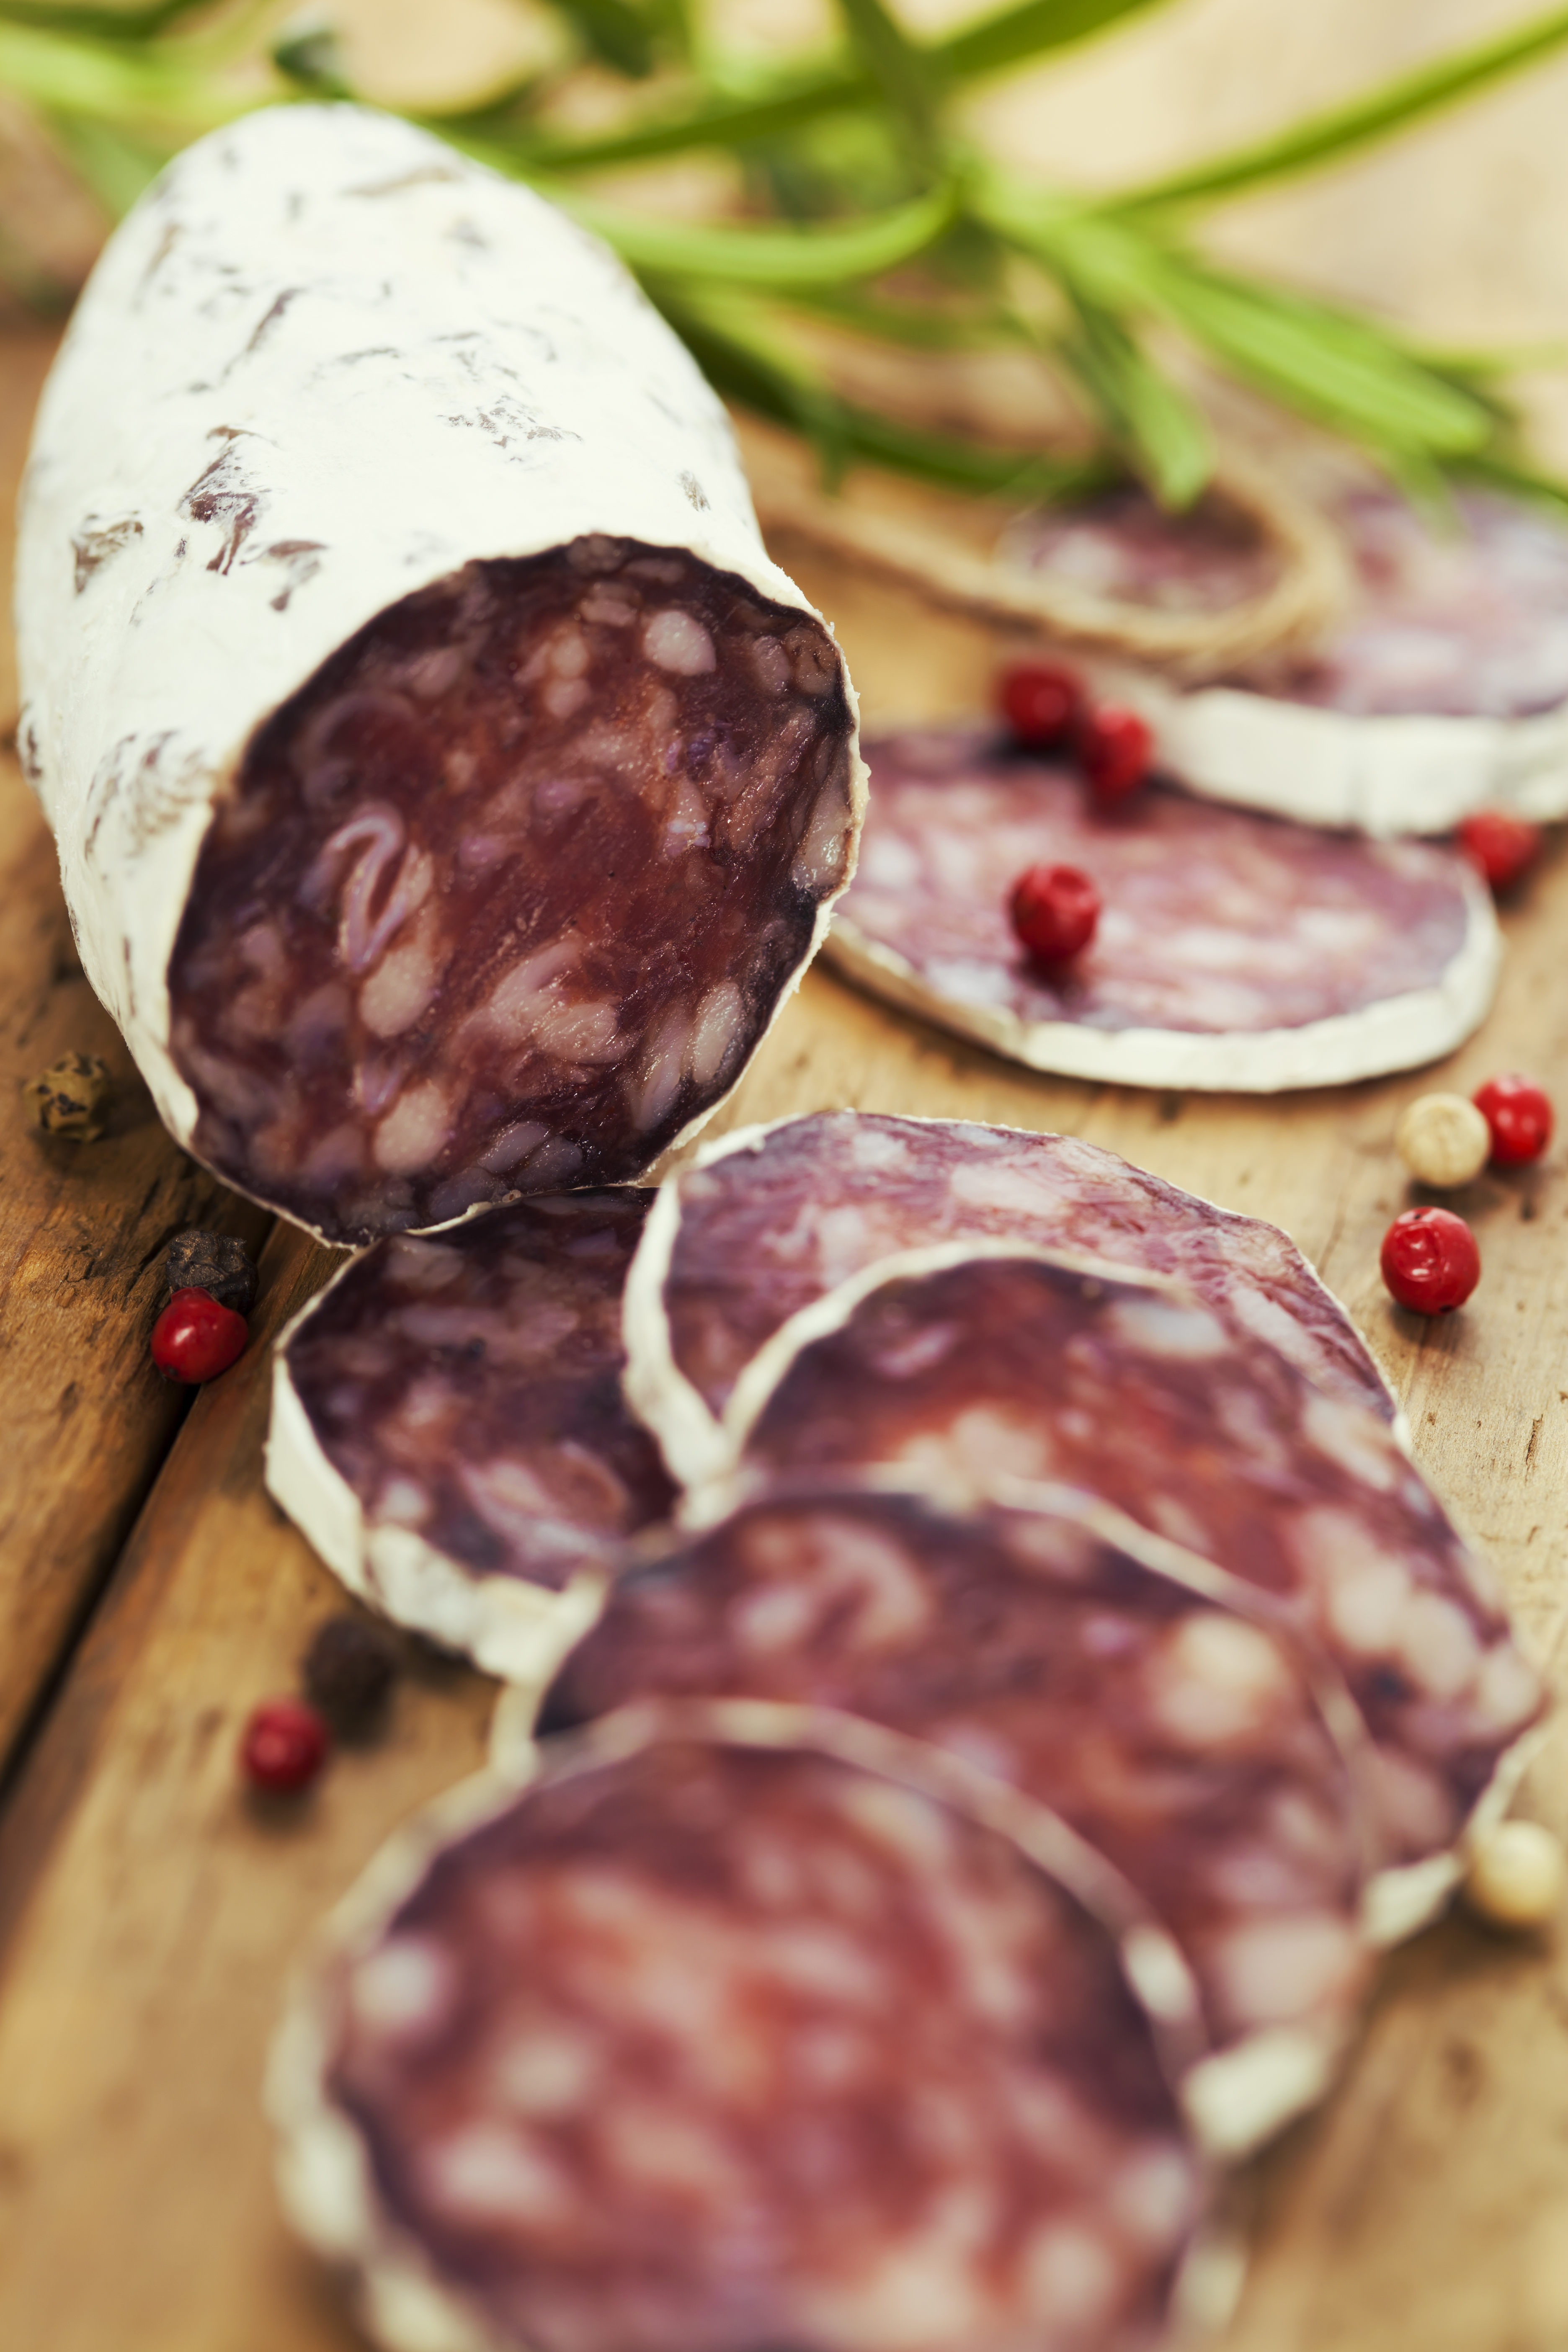 Close-up traditional sliced meat sausage salami on wooden board with rosemary